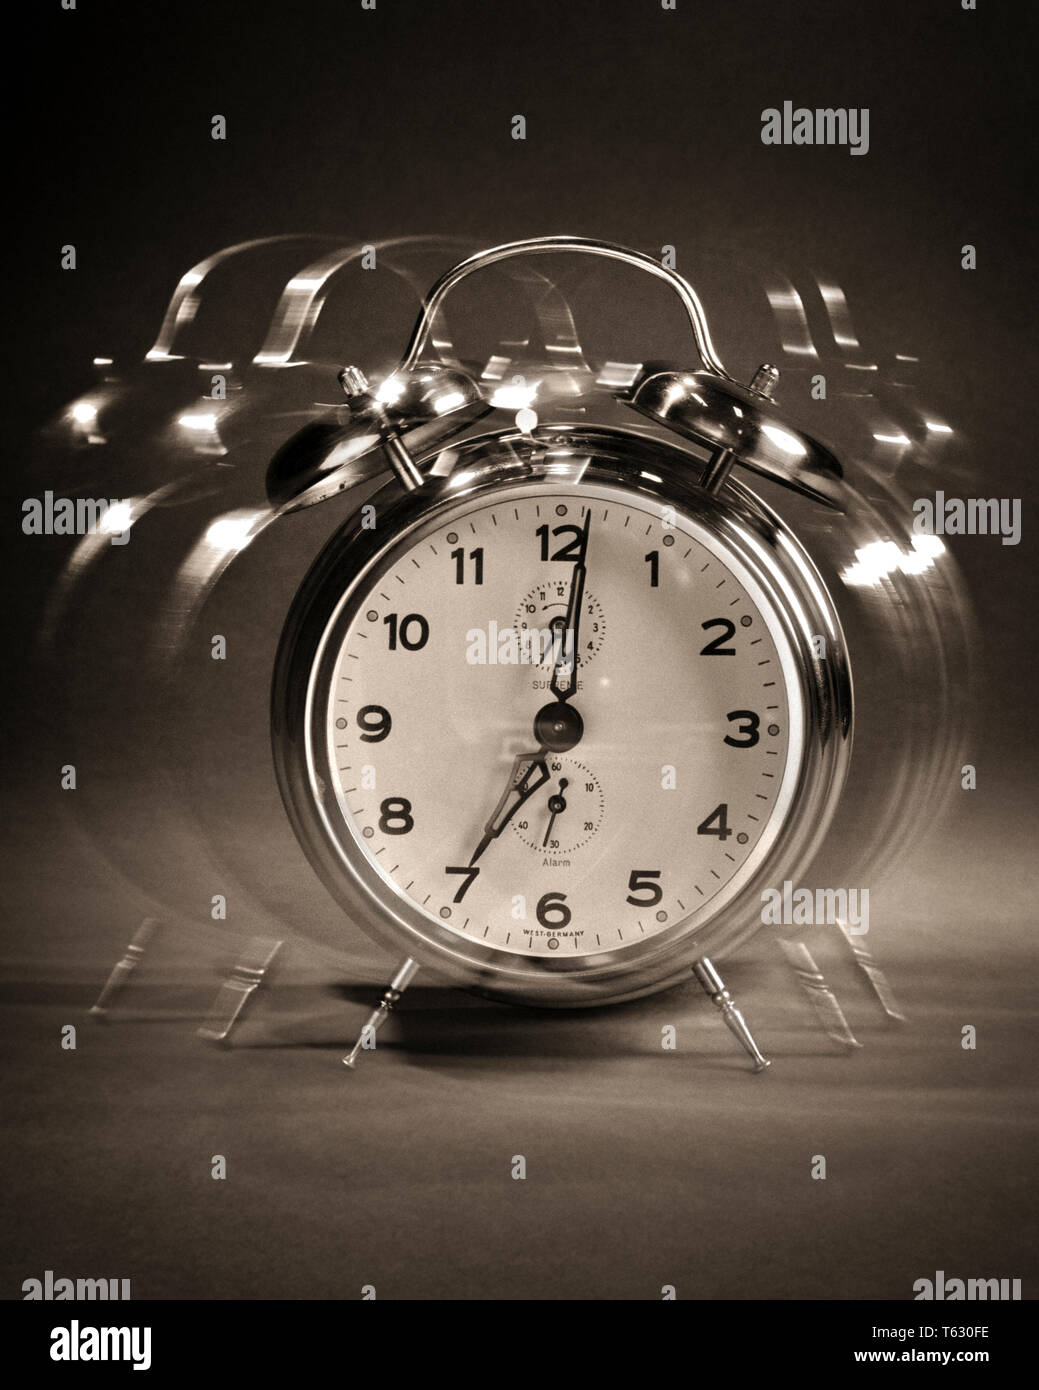 1960s RINGING MOVING SHAKING ALARM CLOCK AT 7 O'CLOCK AM MORNING WAKE-UP - s14120 HAR001 HARS AM GET UP O'CLOCK SYMBOLIC WINDUP CONCEPTS WAKEN BLACK AND WHITE GRAPHIC EFFECT HAR001 OLD FASHIONED REPRESENTATION - Stock Image